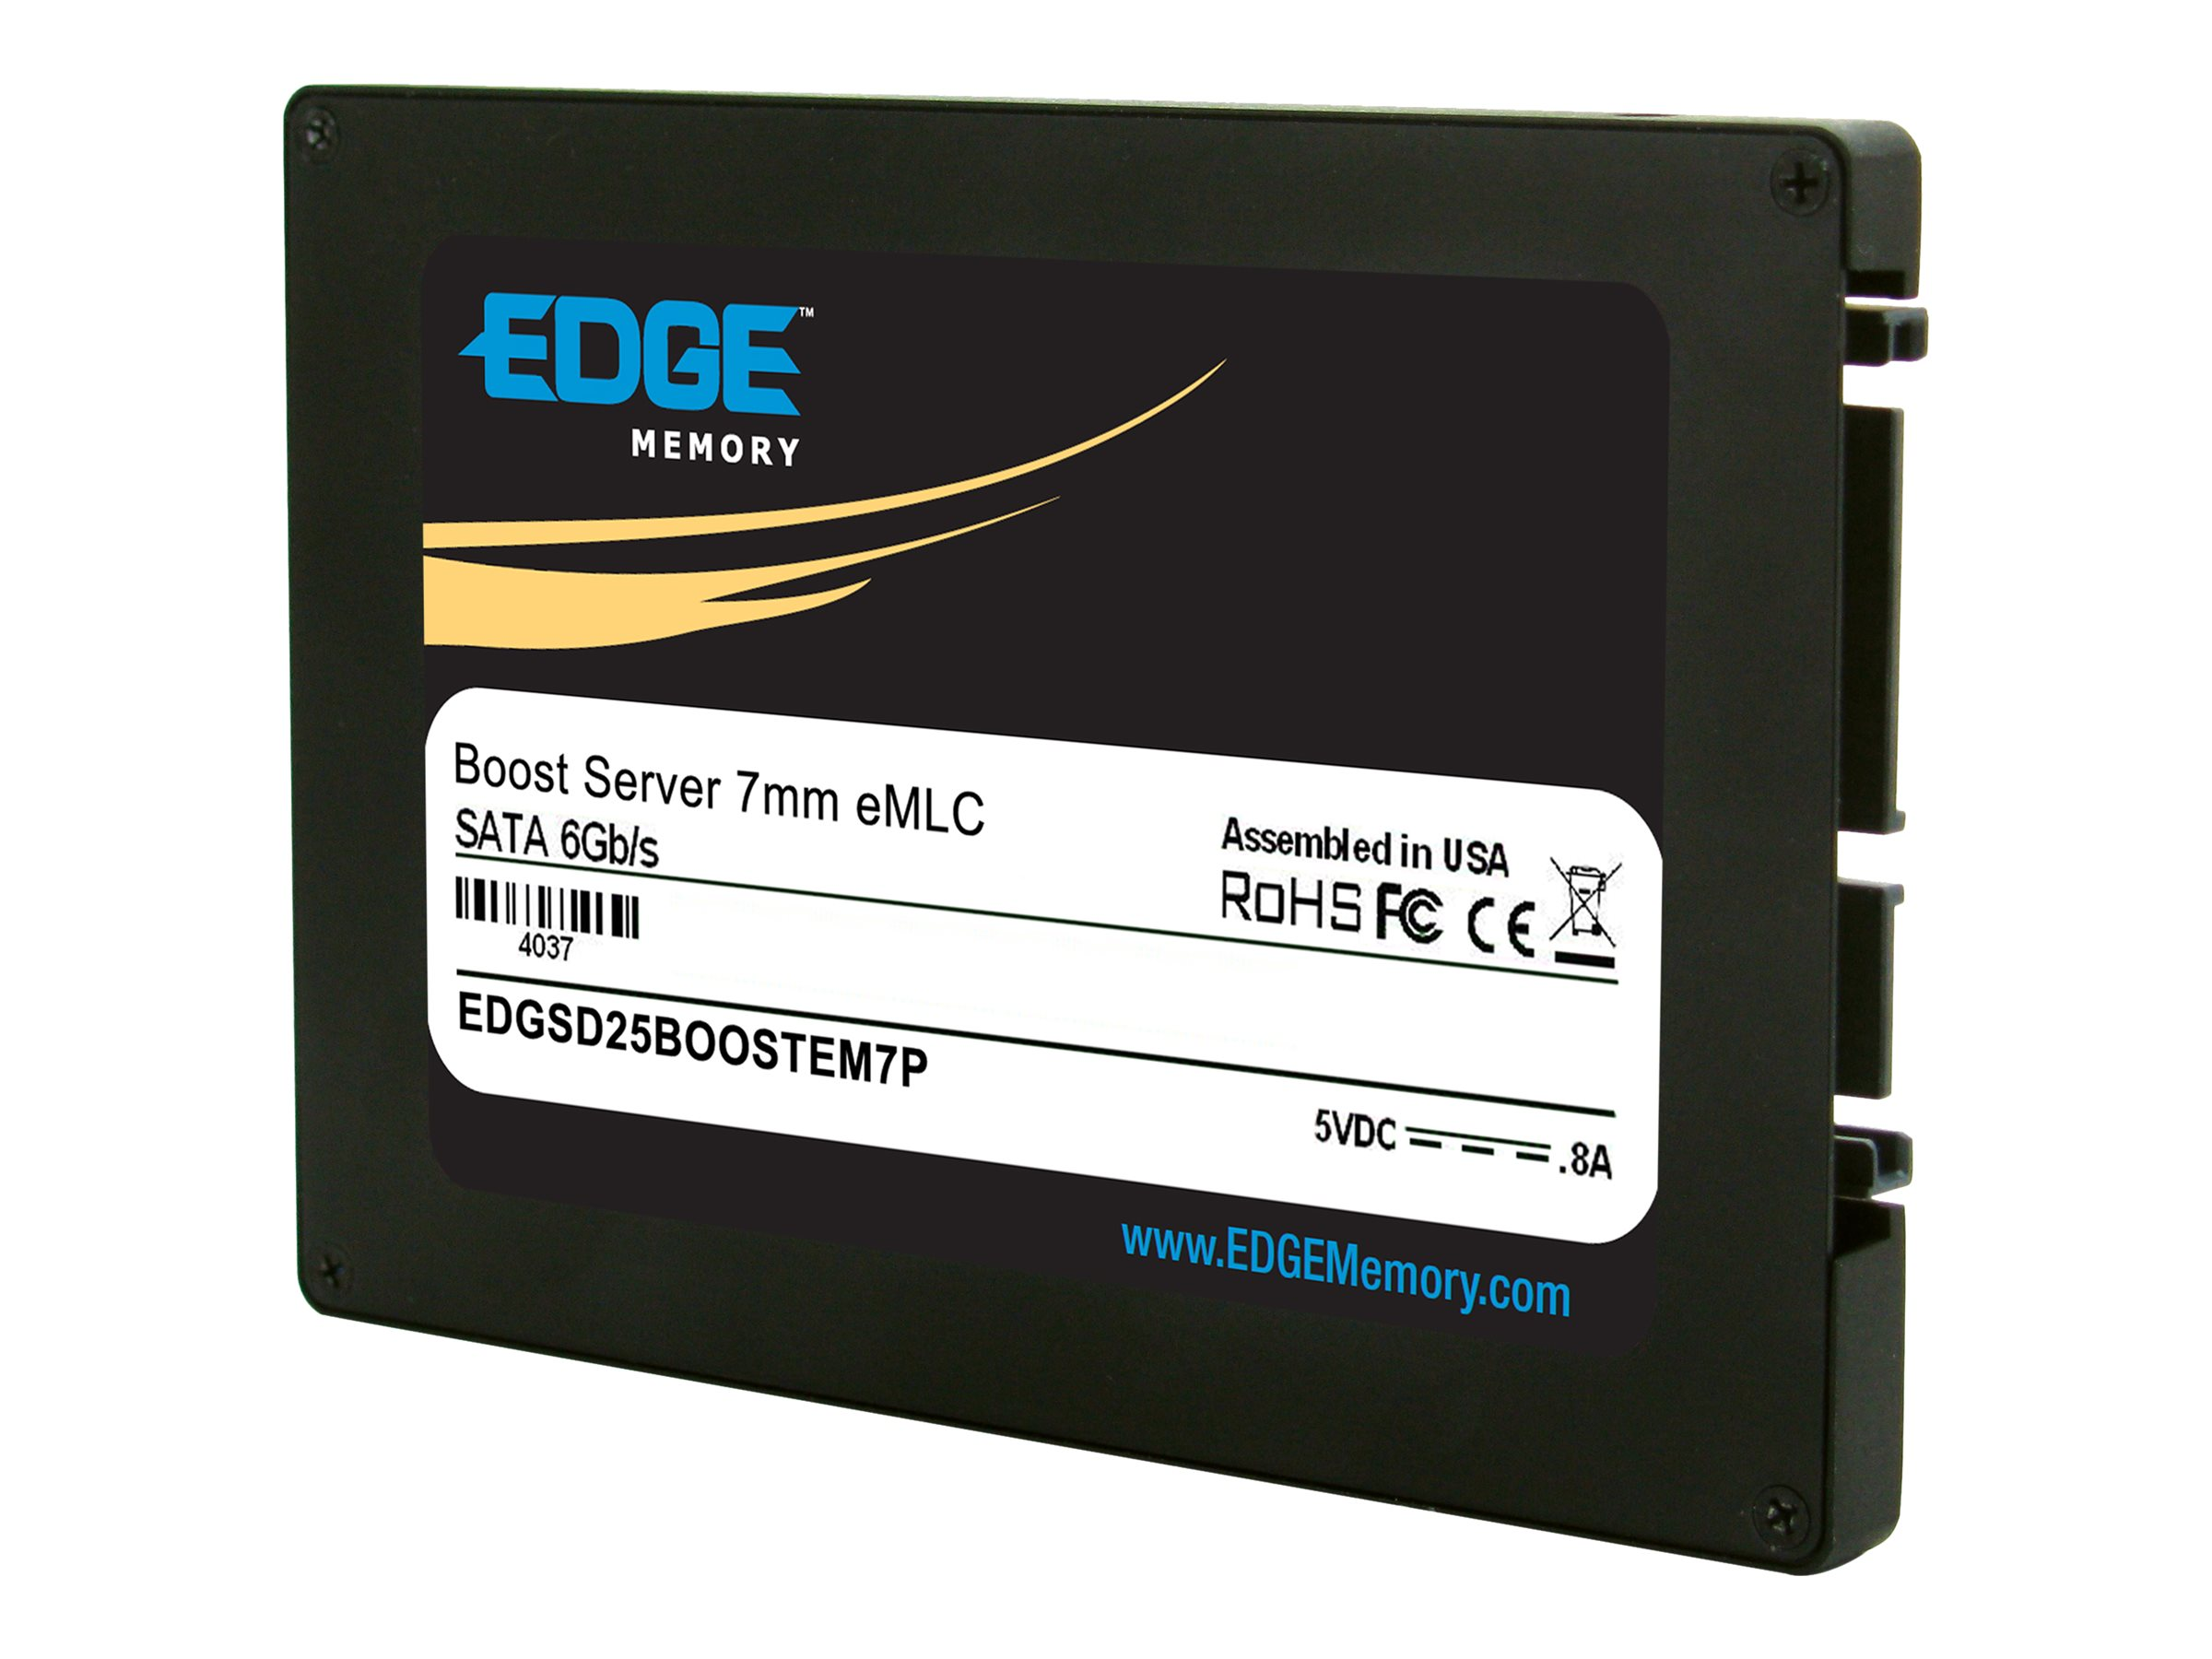 Edge 100GB Boost Server SATA 6Gb s eMLC 2.5 7mm Internal Solid State Drive